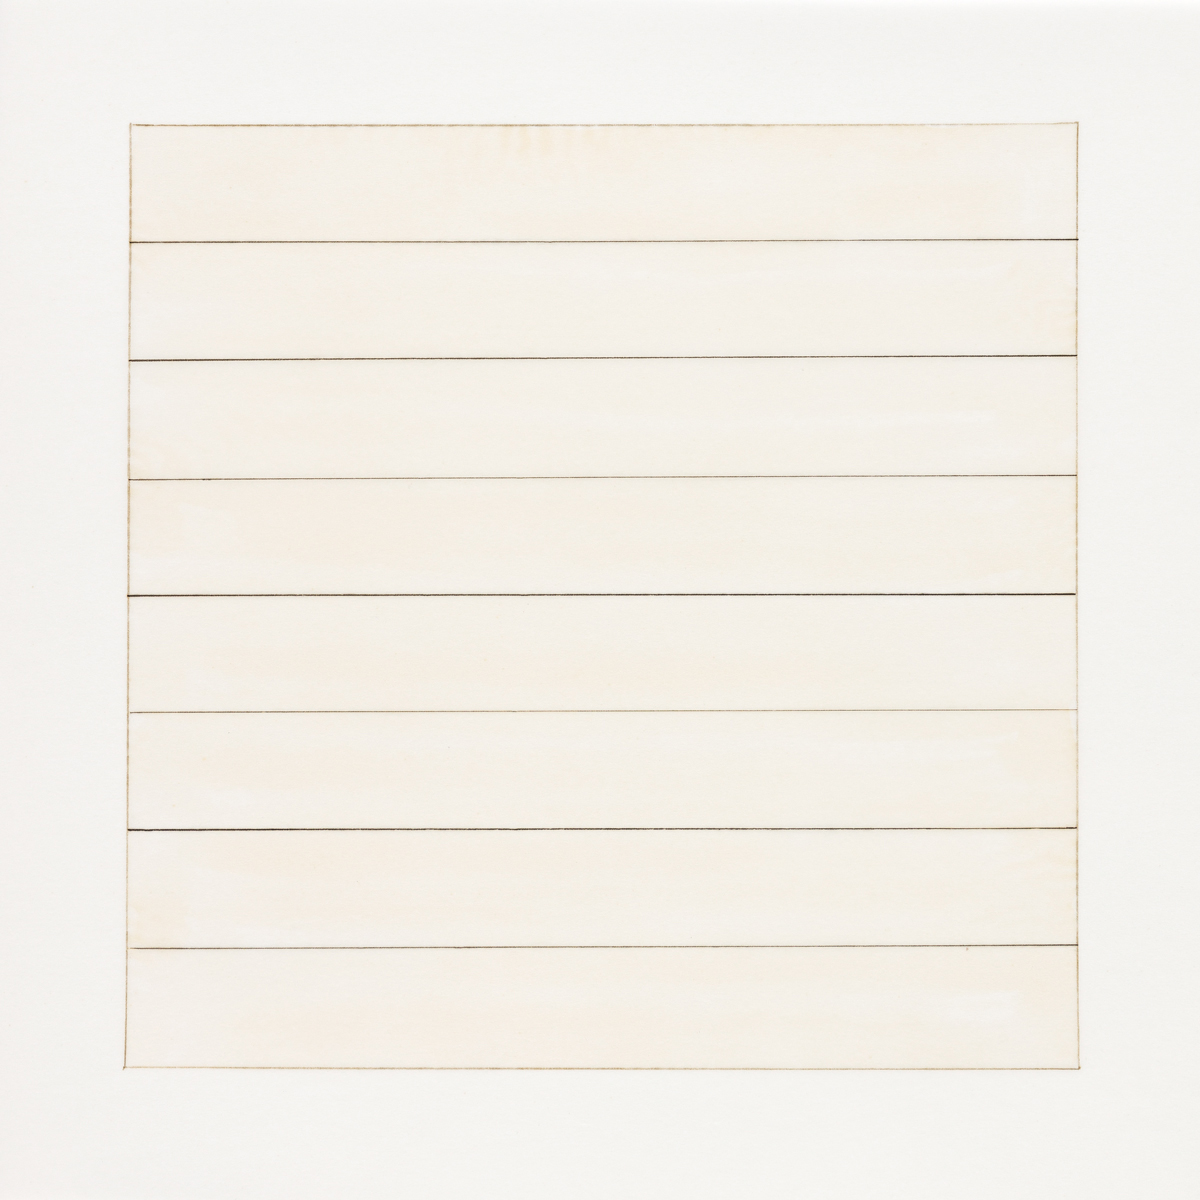 MARTIN, AGNES. Paintings and Drawings 1974-1990.